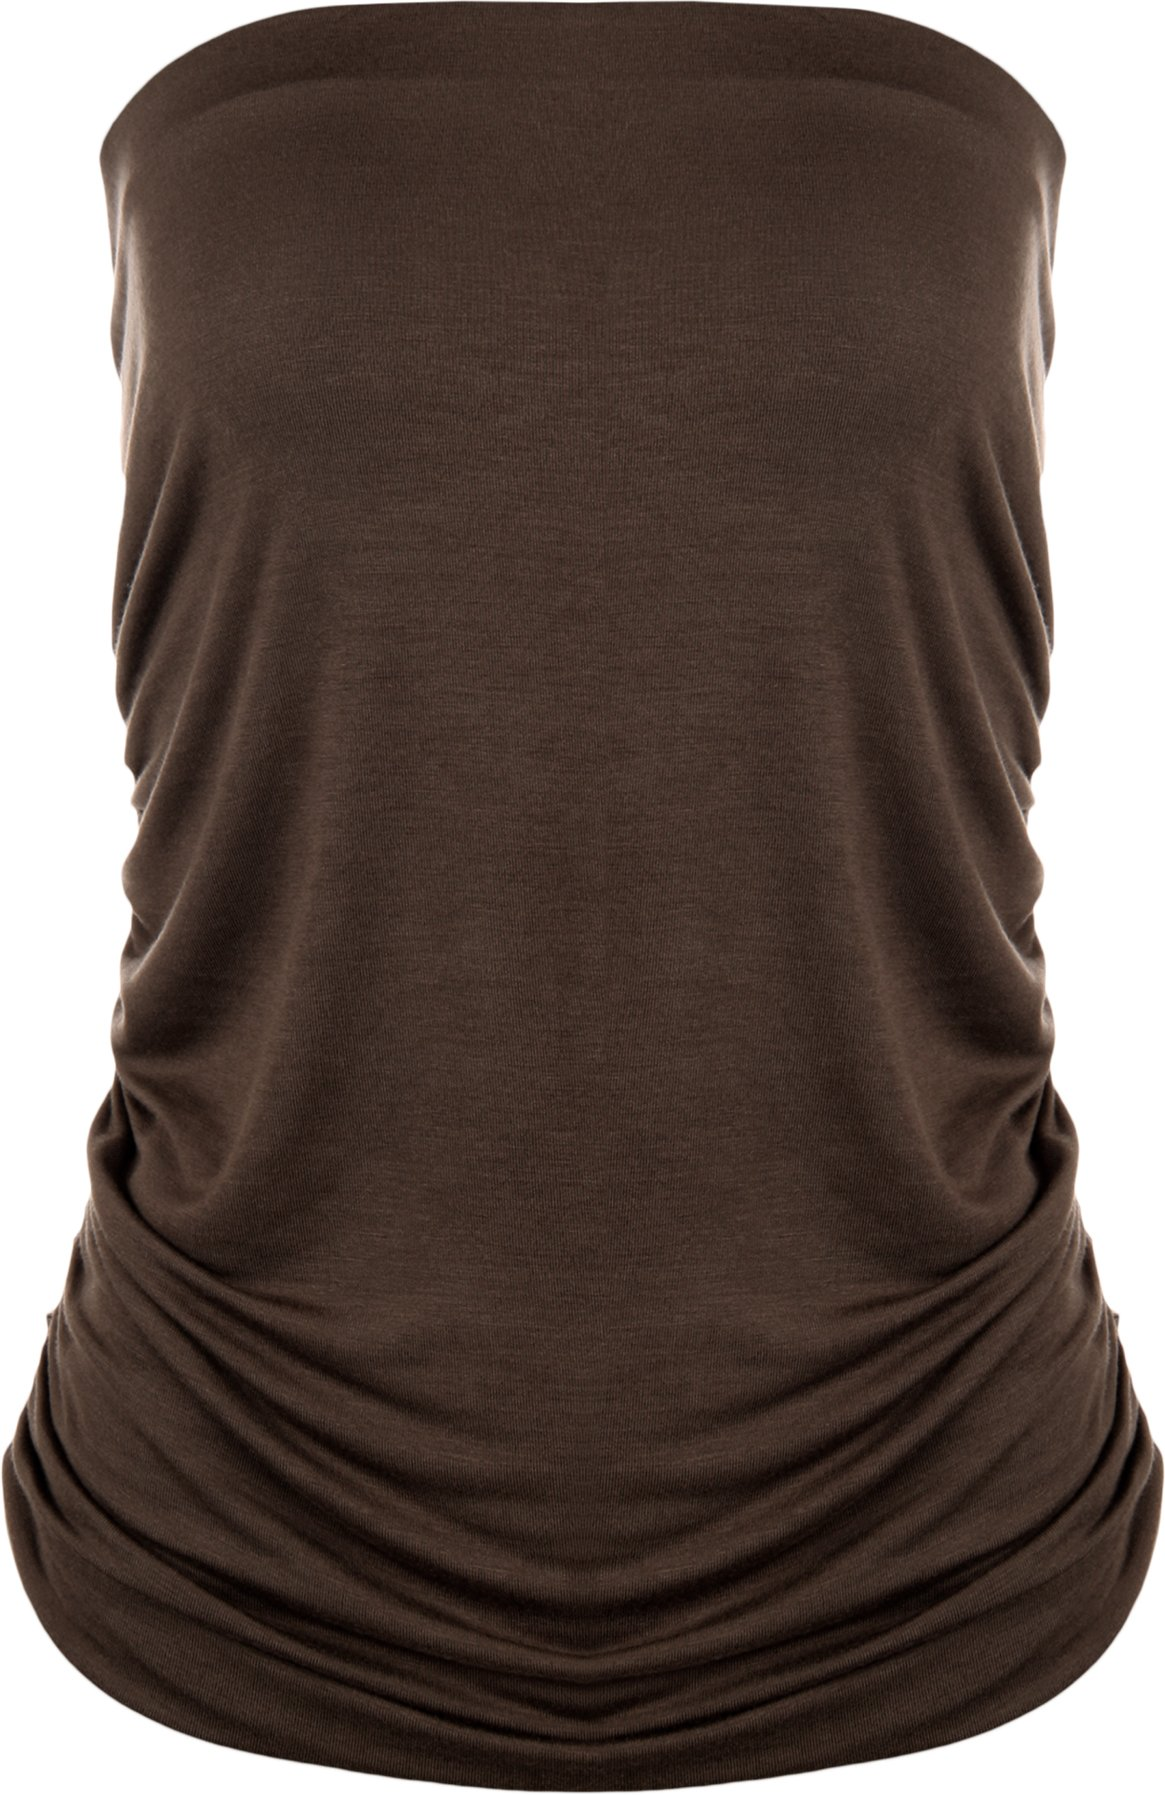 WearAll Plus Size Plain Bandeau Top - Dark Brown - US 20-22 (UK 24-26)